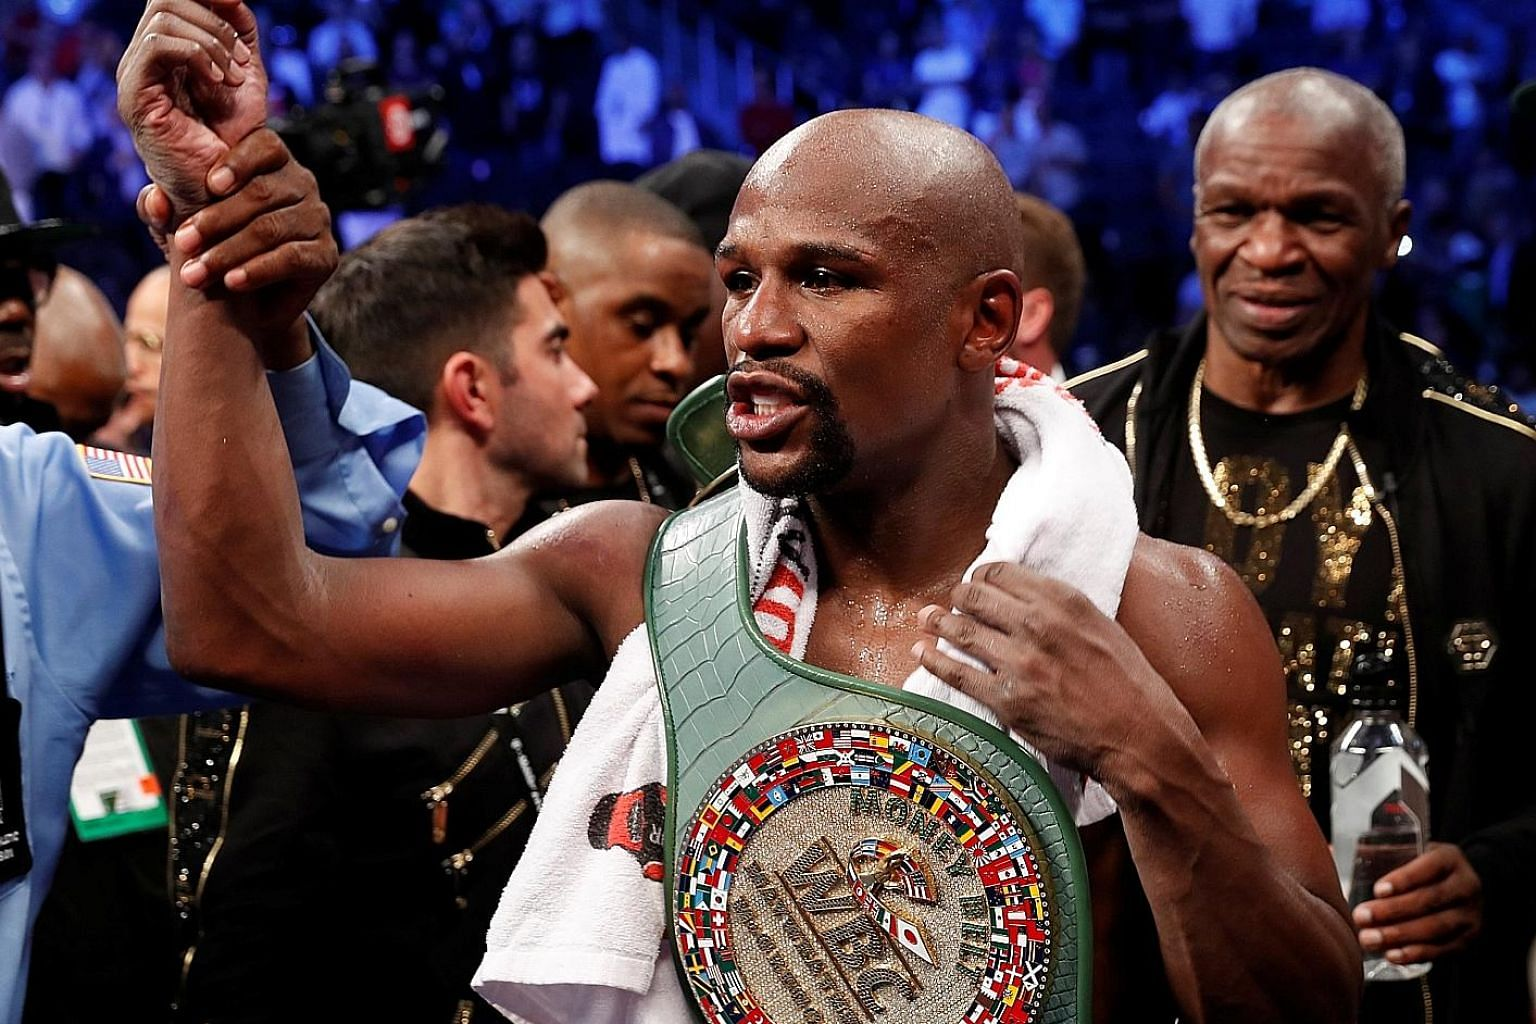 (Clockwise from far left) Boxer Floyd Mayweather was followed by actor George Clooney at No. 2 and reality TV star Kylie Jenner at the third spot on the annual highest paid celebrities list.